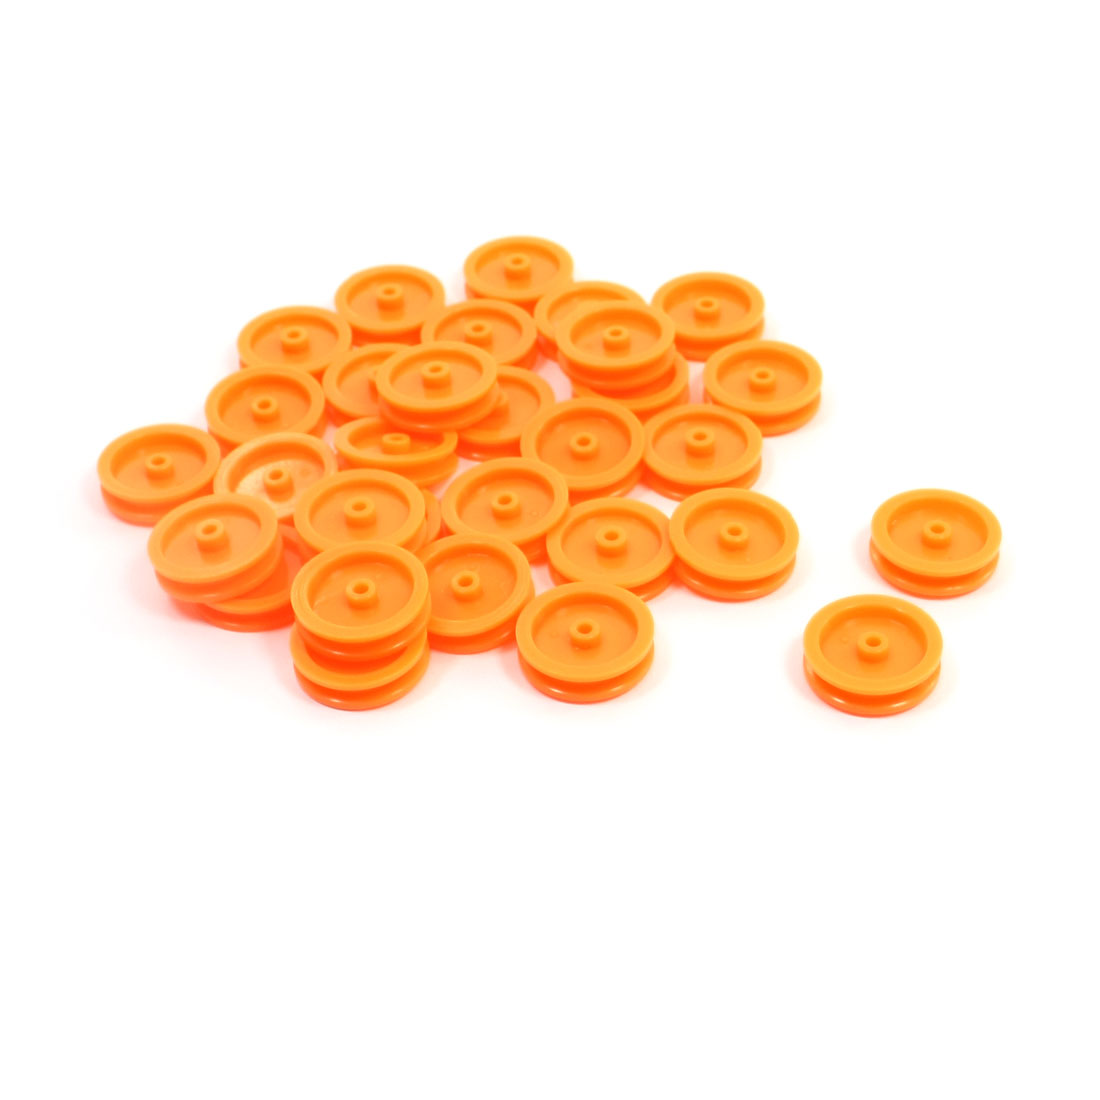 30Pcs-17mm-Dia-Round-Orange-Plastic-Belt-Pulley-Wheel-for-RC-Toy-Model